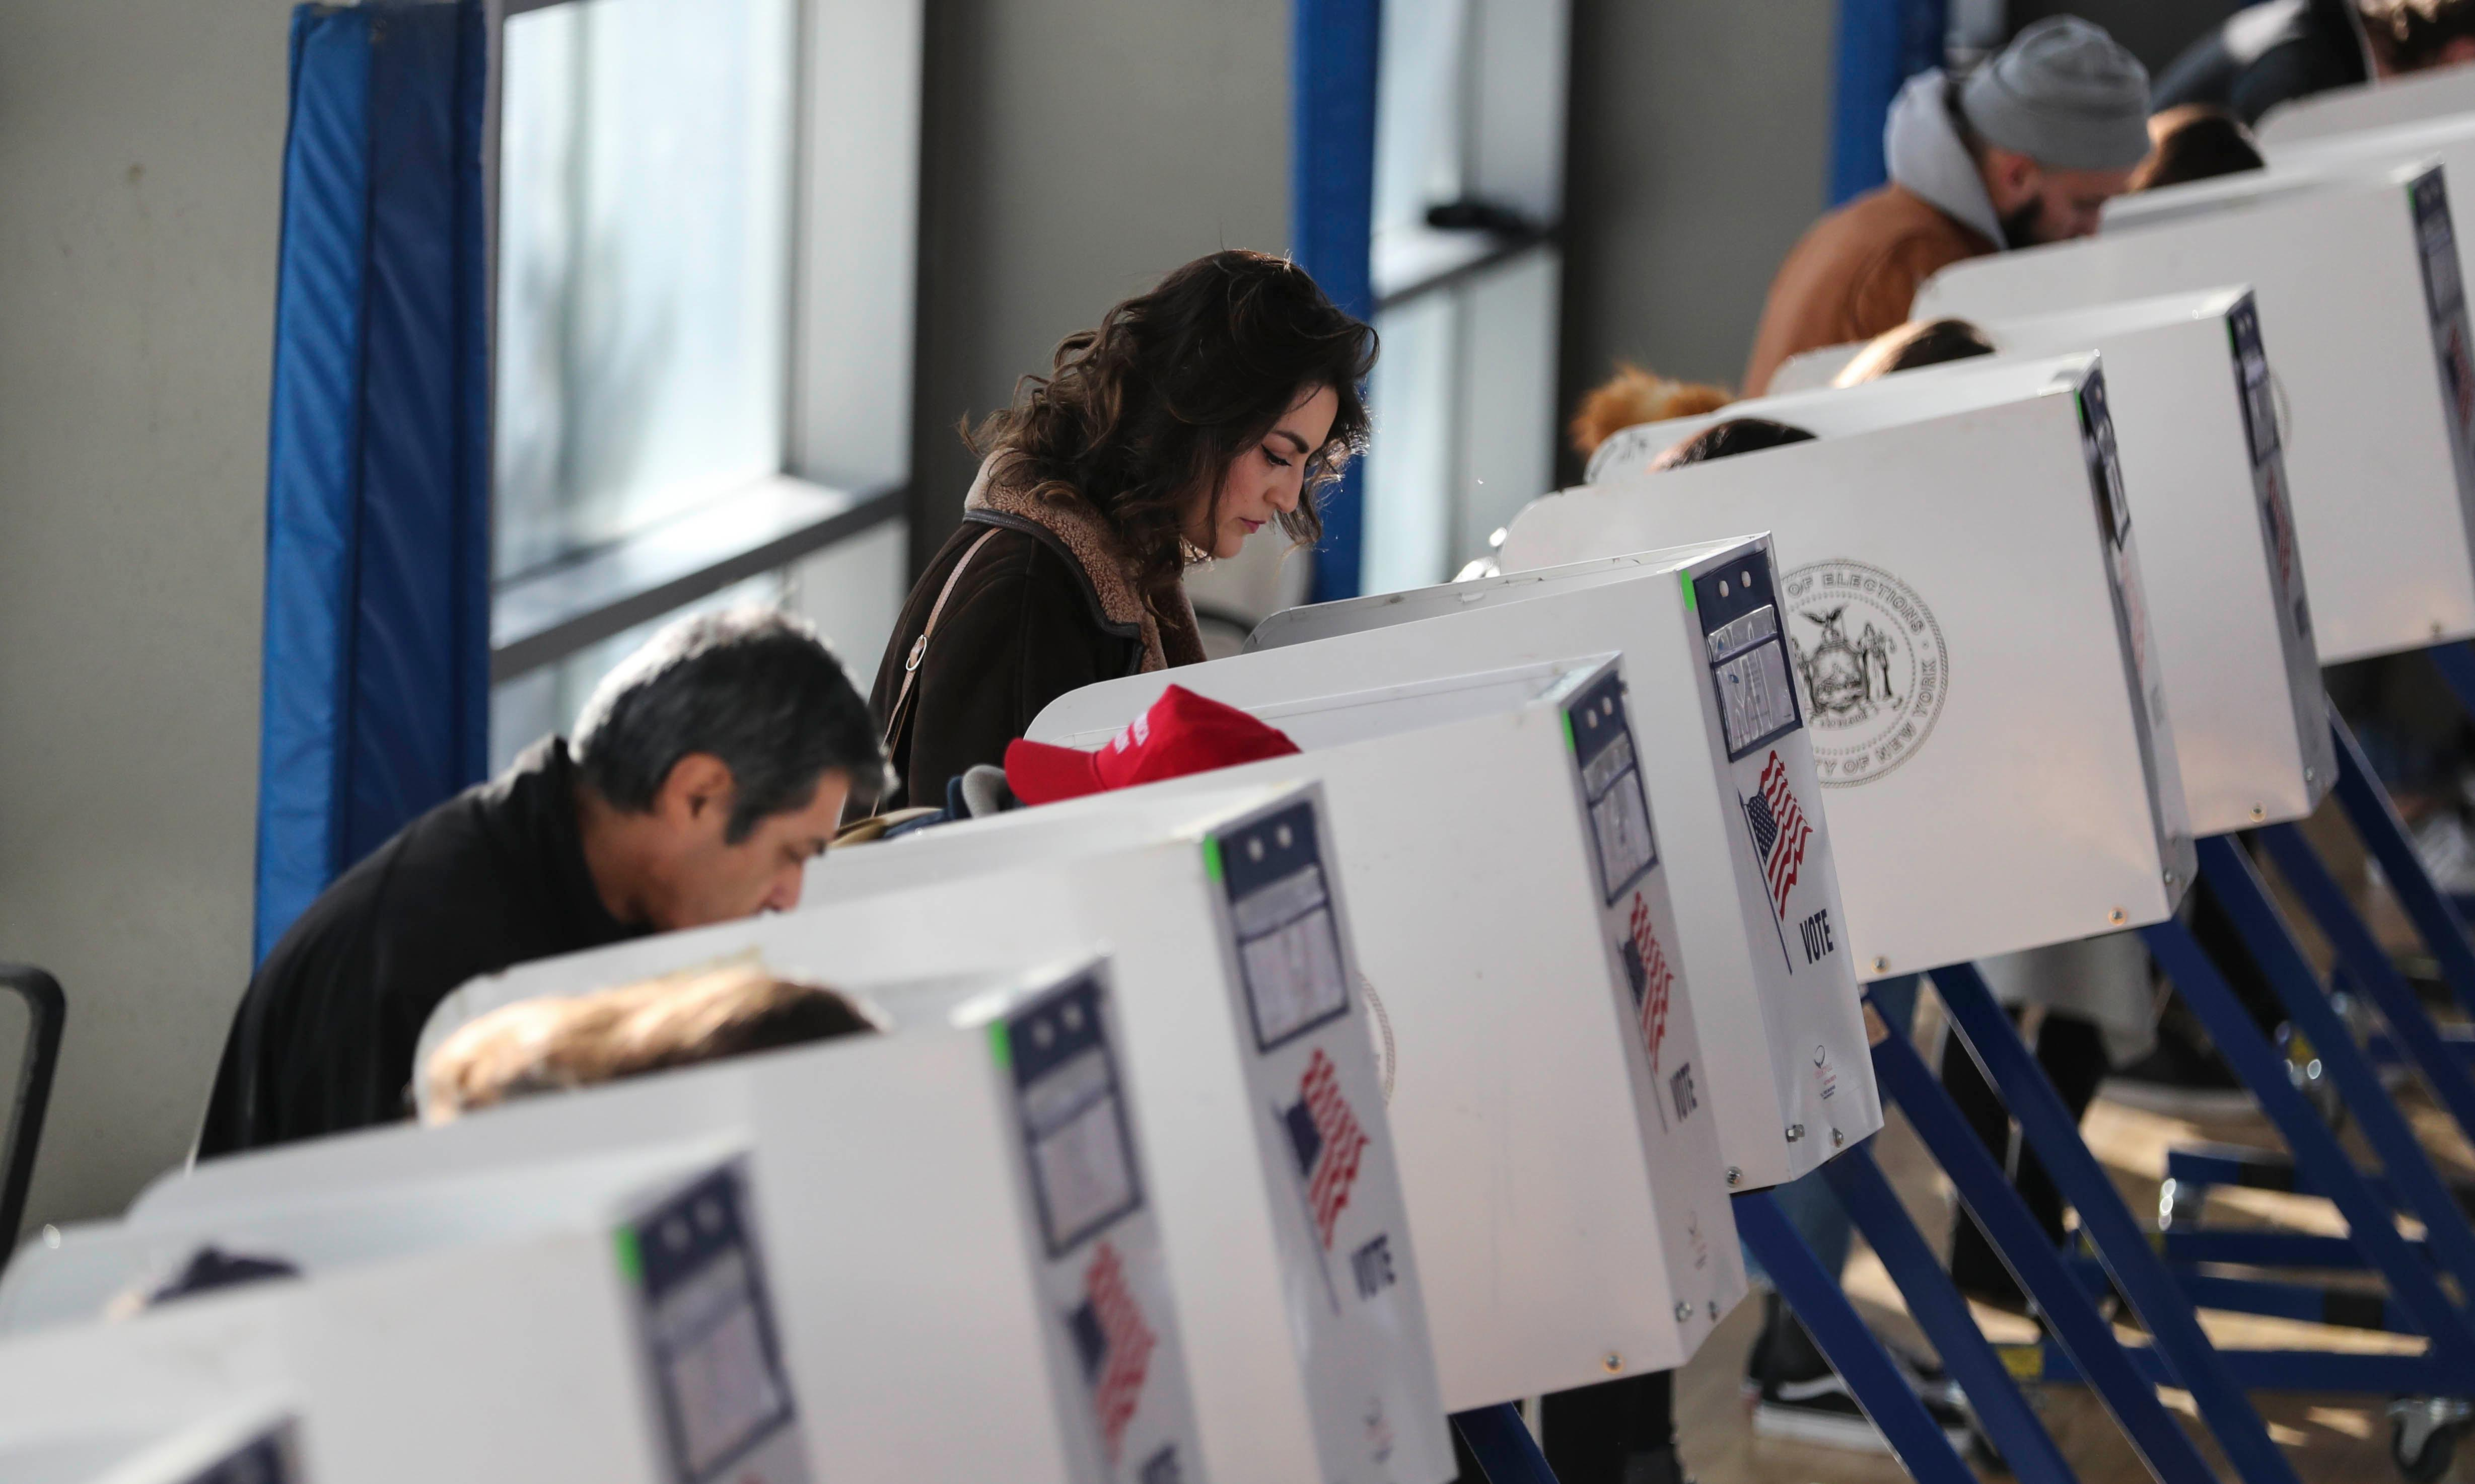 More than 1,000 US polling sites closed since supreme court ruling, report finds